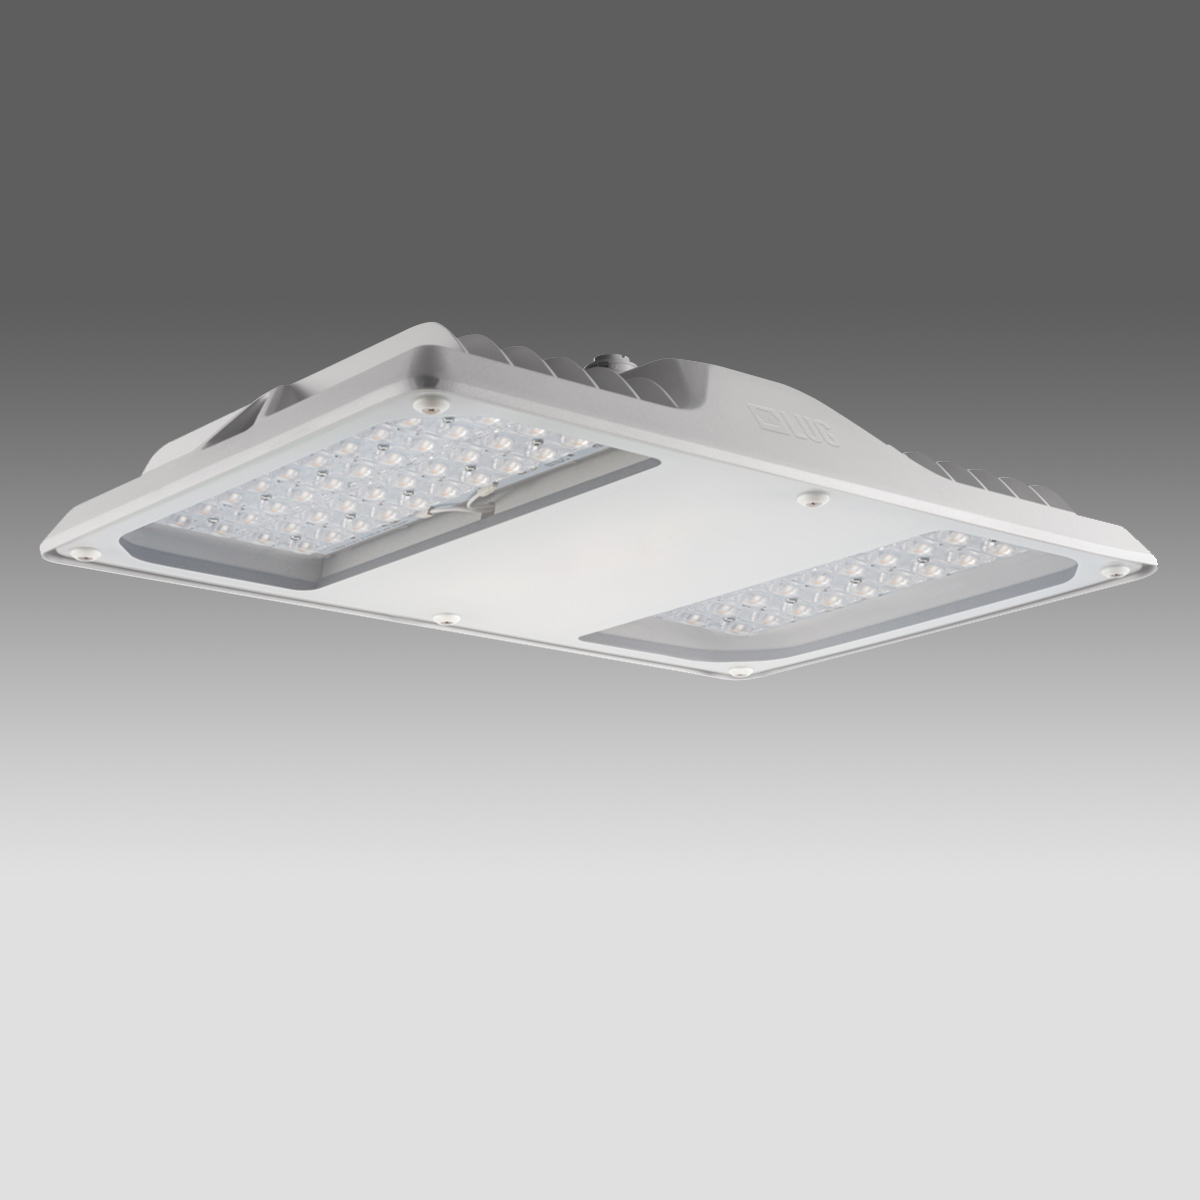 1 Stk Arktur Square PLUS LED 206W 25500lm/765 EVG IP65 55° grau LIG4253011